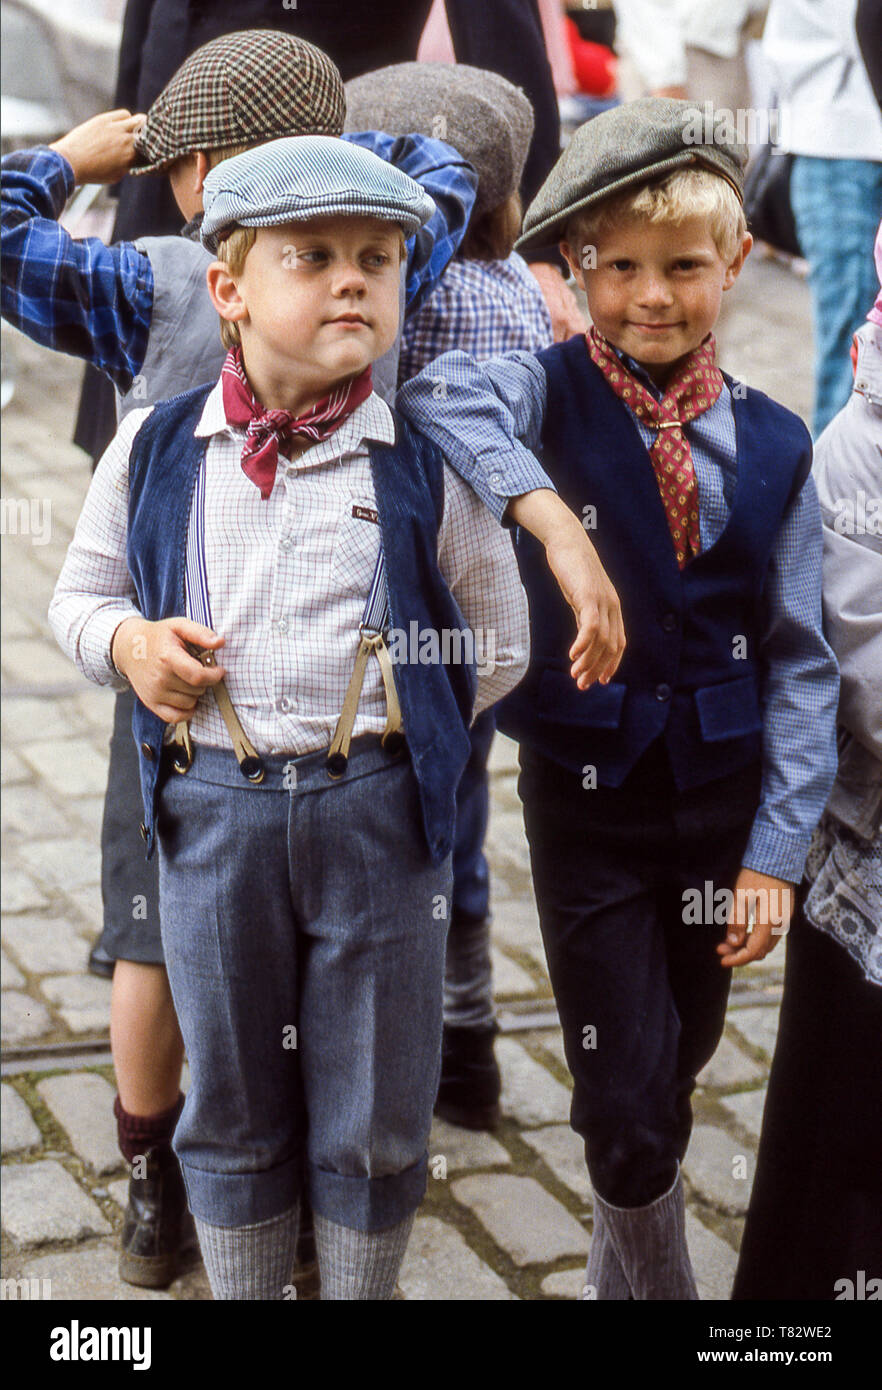 Young children dressed as for the 1900s at the Beamish Museum in County Durham.England. - Stock Image